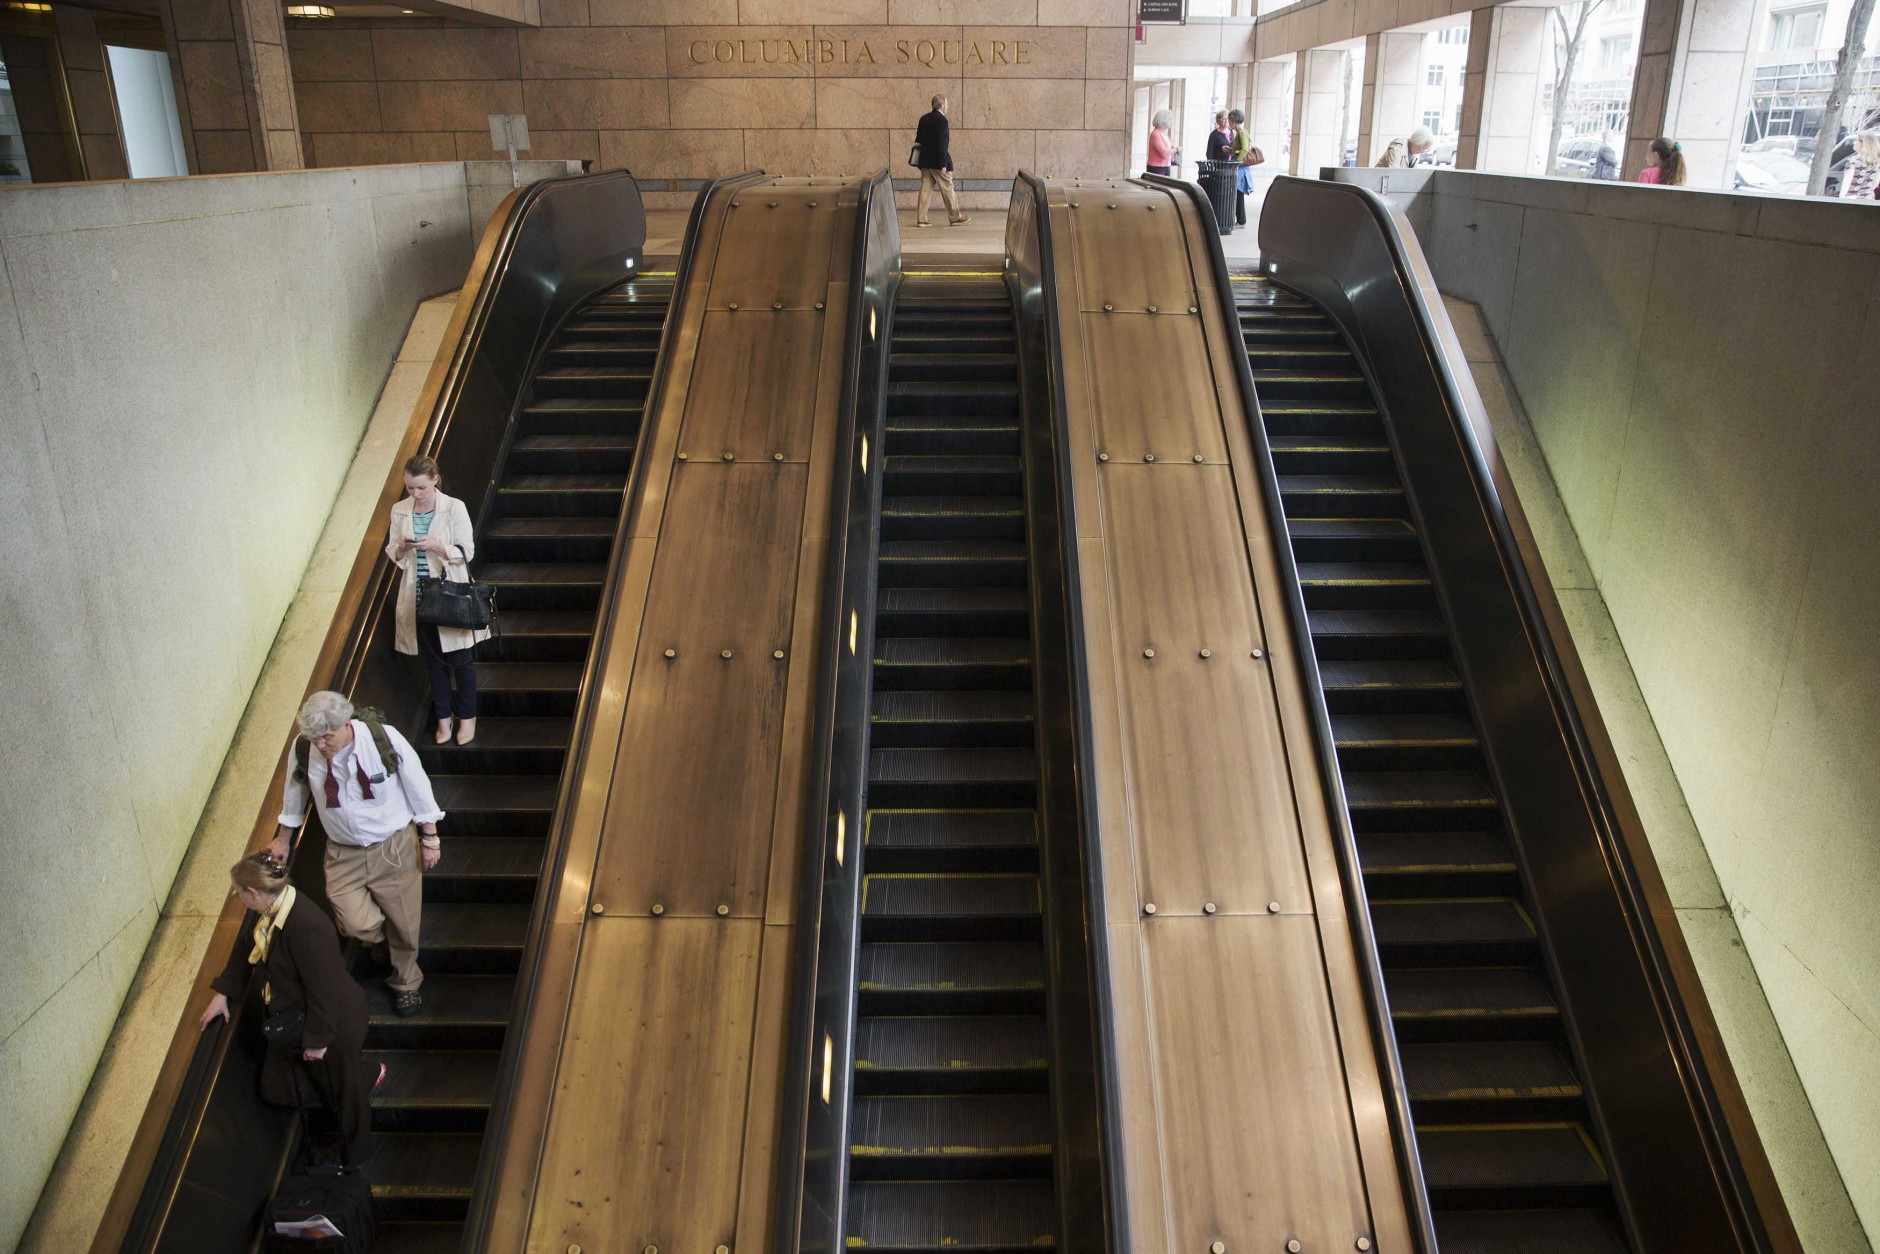 People ride the escalator into the Metro Center metro stop in downtown Washington, Tuesday, April 7, 2015. (AP Photo/Jacquelyn Martin)